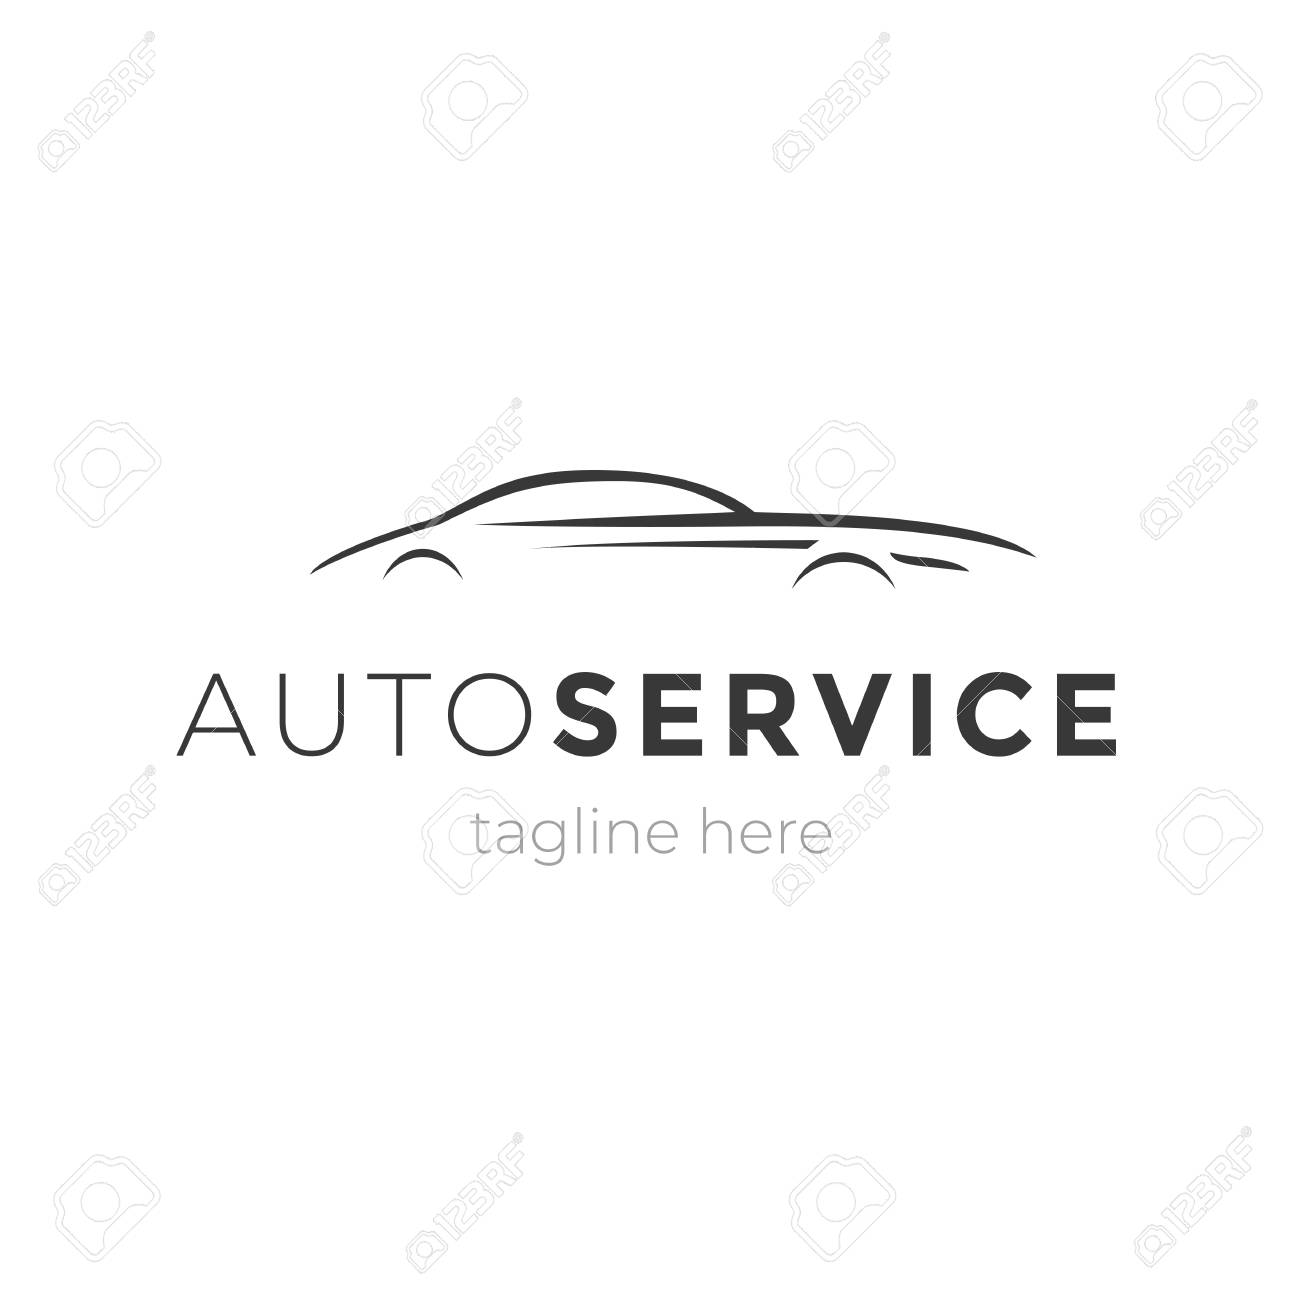 Modern Auto Service Emblem With Car Silhouette Logo Design Vector Royalty Free Cliparts Vectors And Stock Illustration Image 97562106